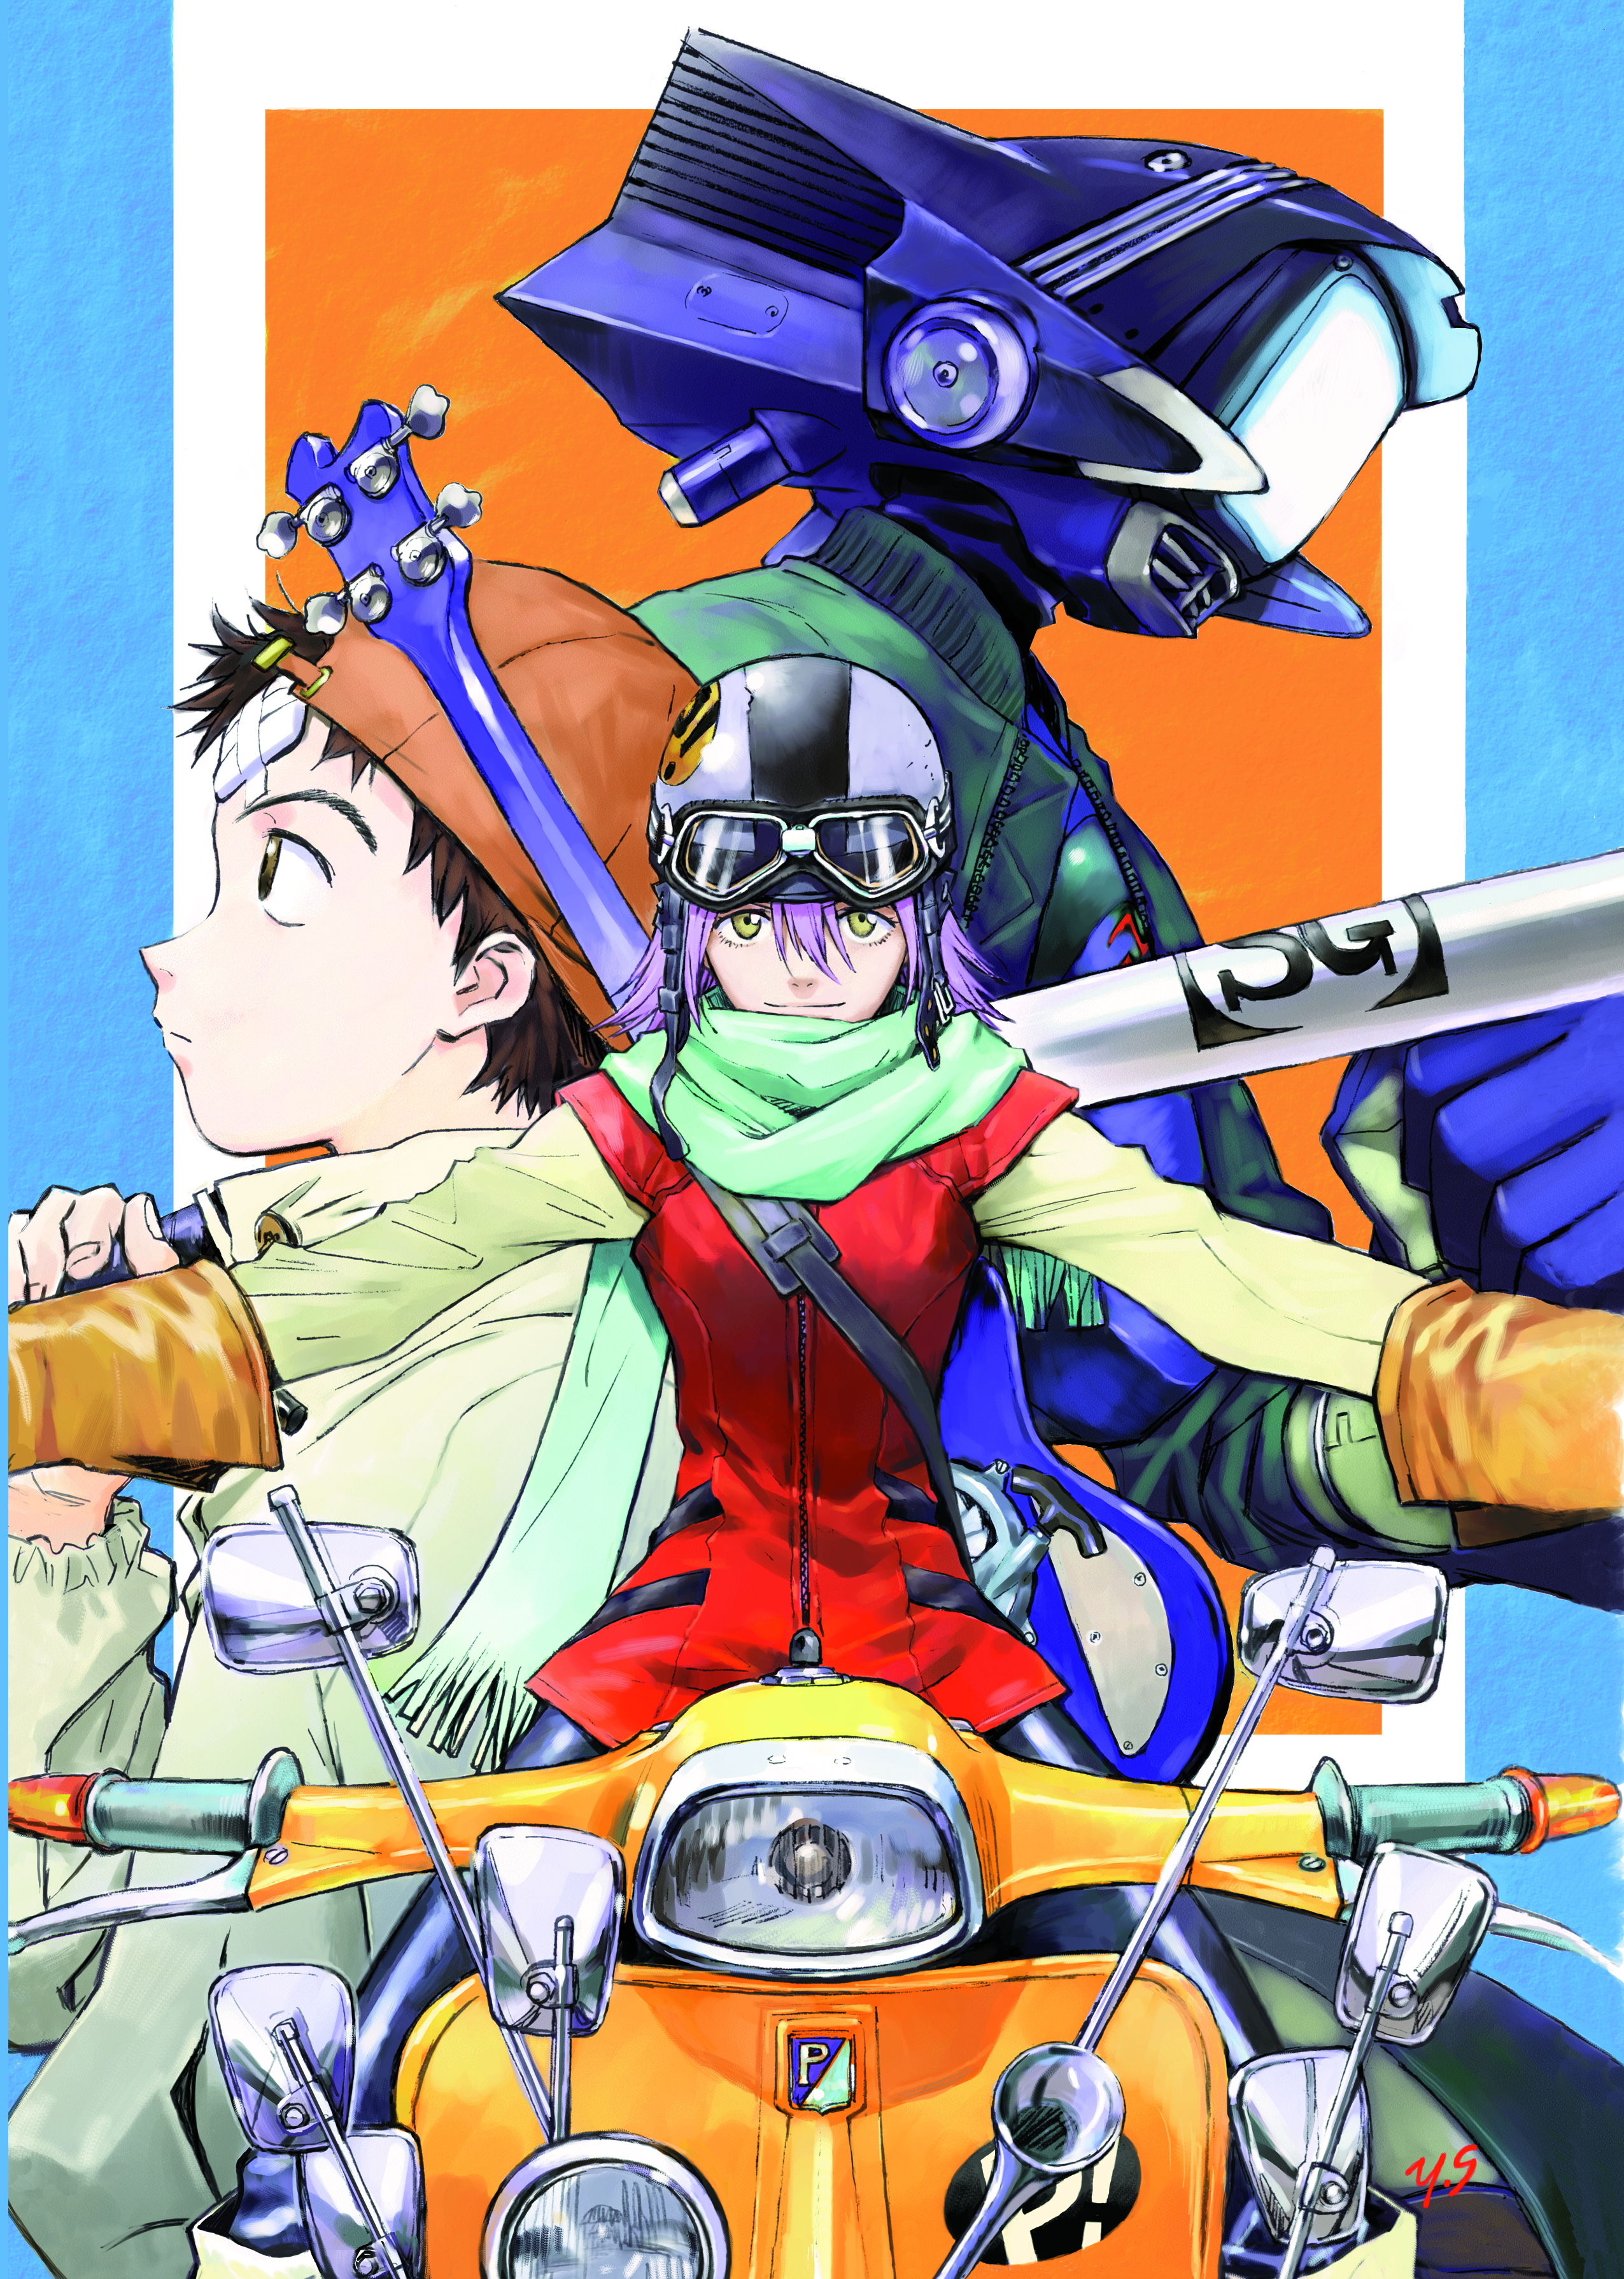 production i g  to present flcl 2 panel with creator and